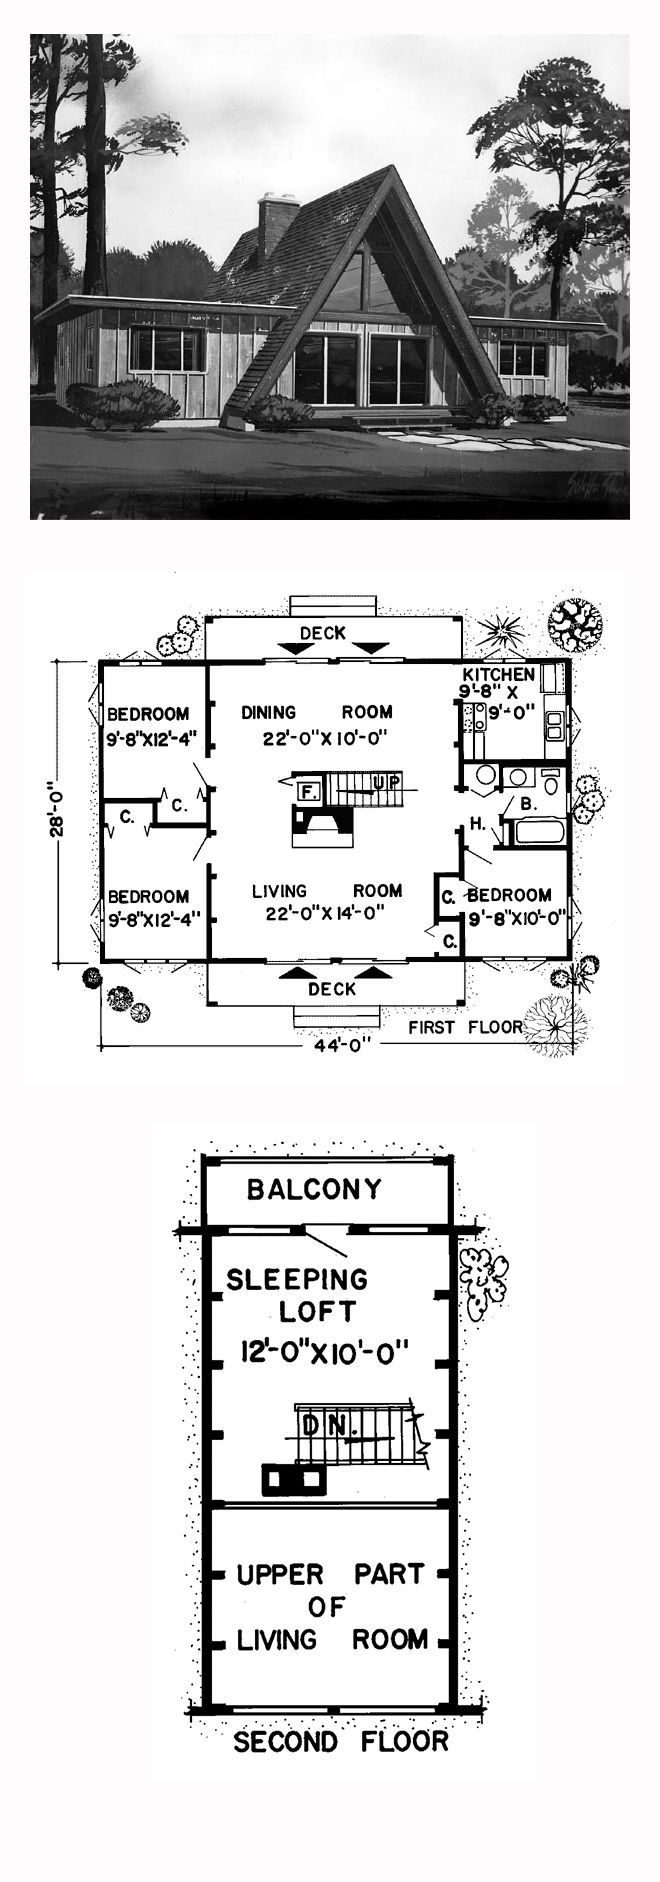 A-Frame Contemporary Retro Style House Plan with 1456 Sq Ft, 3 Bed, 1 Bath